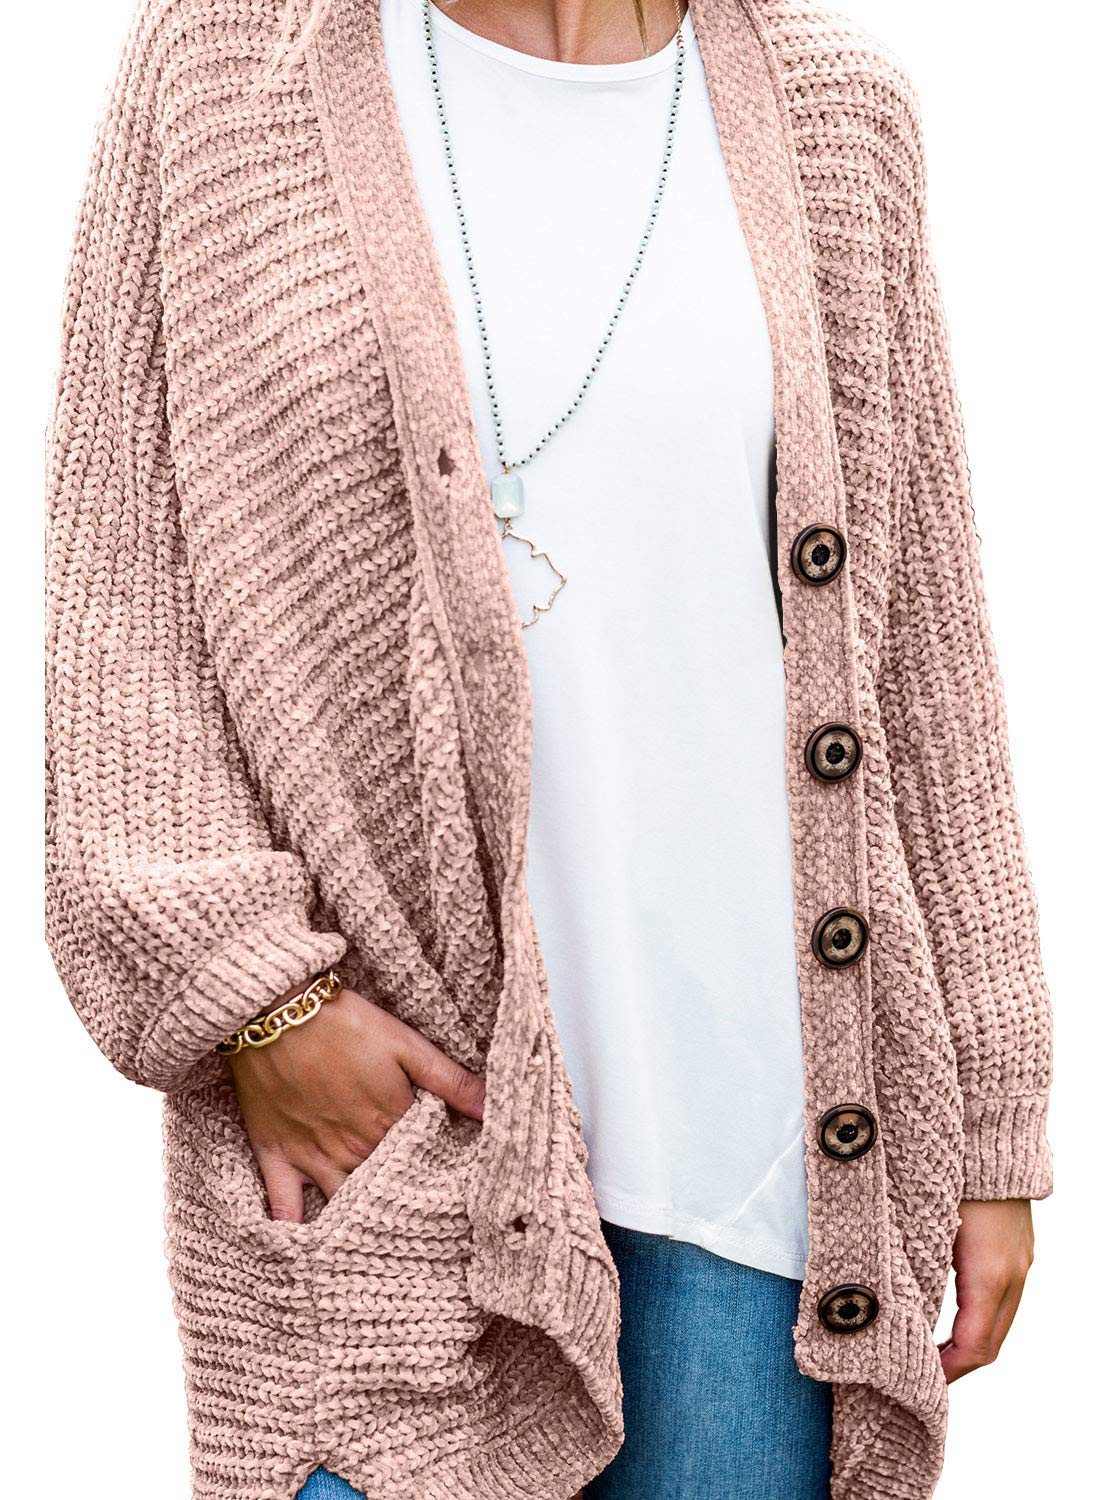 Dearlove Womens Button Down Chunky Chenille Kinit Cardigan Sweaters Loose Oversized Outwear Ooat with Pocket Pink S by Dearlove